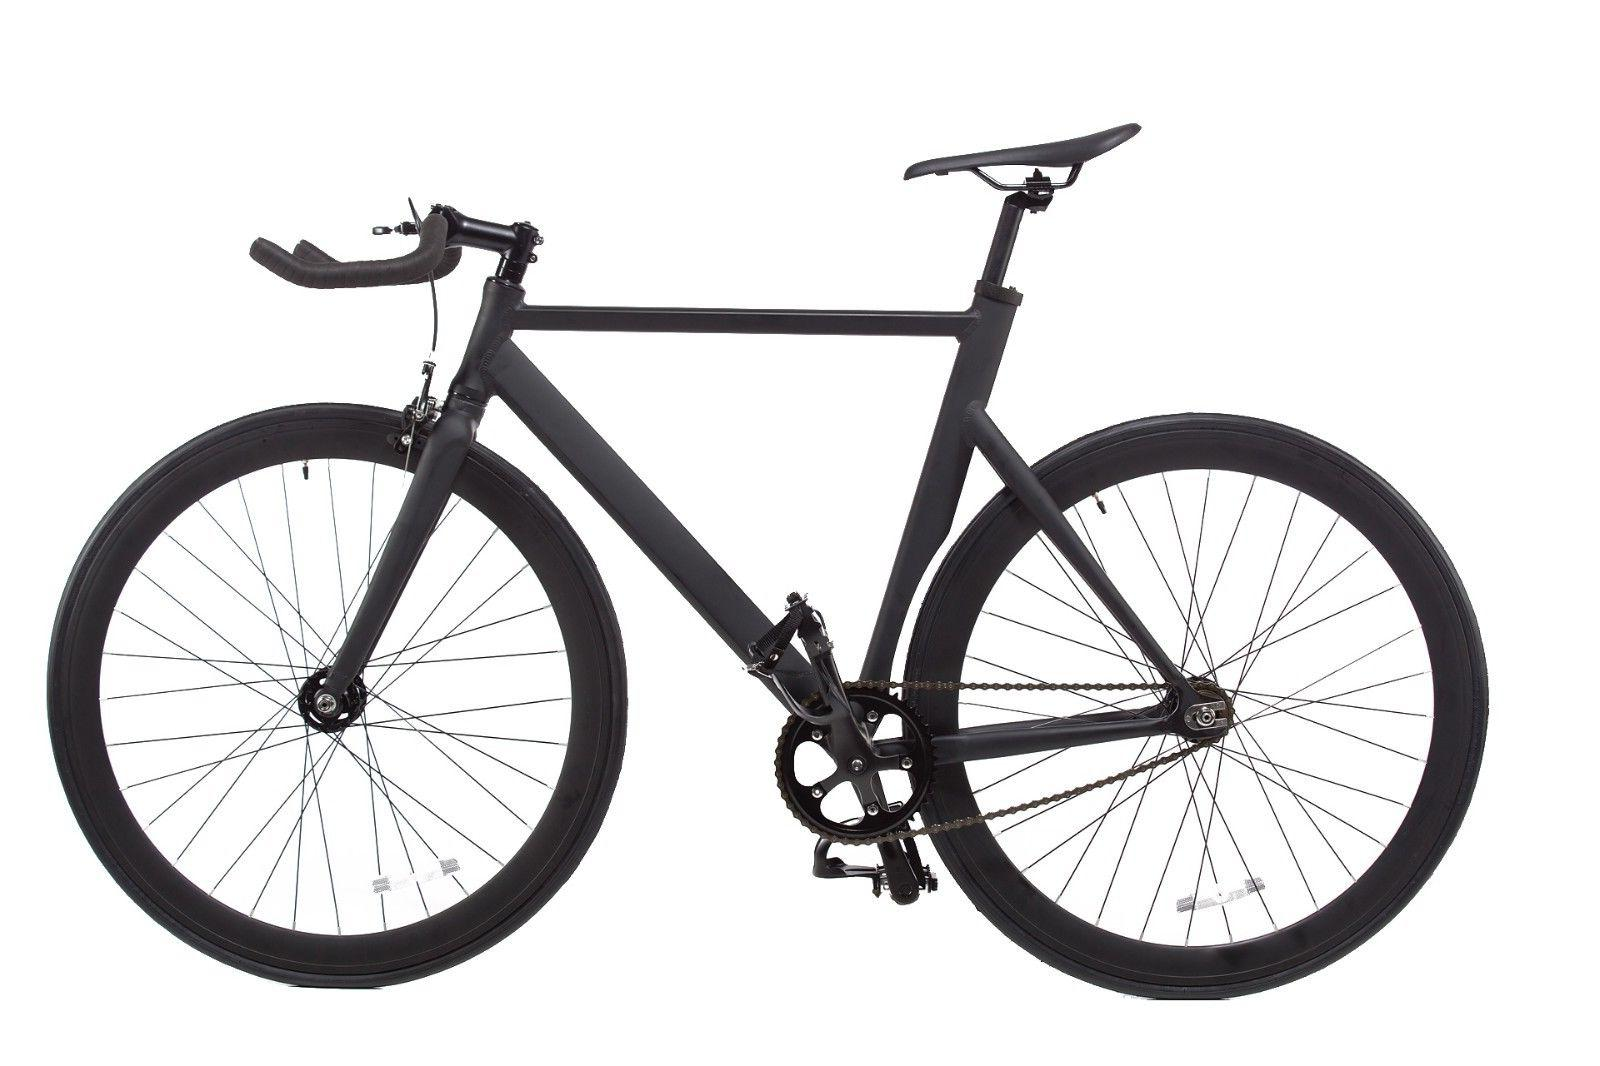 VELOCE BIKE V1 Gear Aluminum 6061 Bicycle Free Toolkit